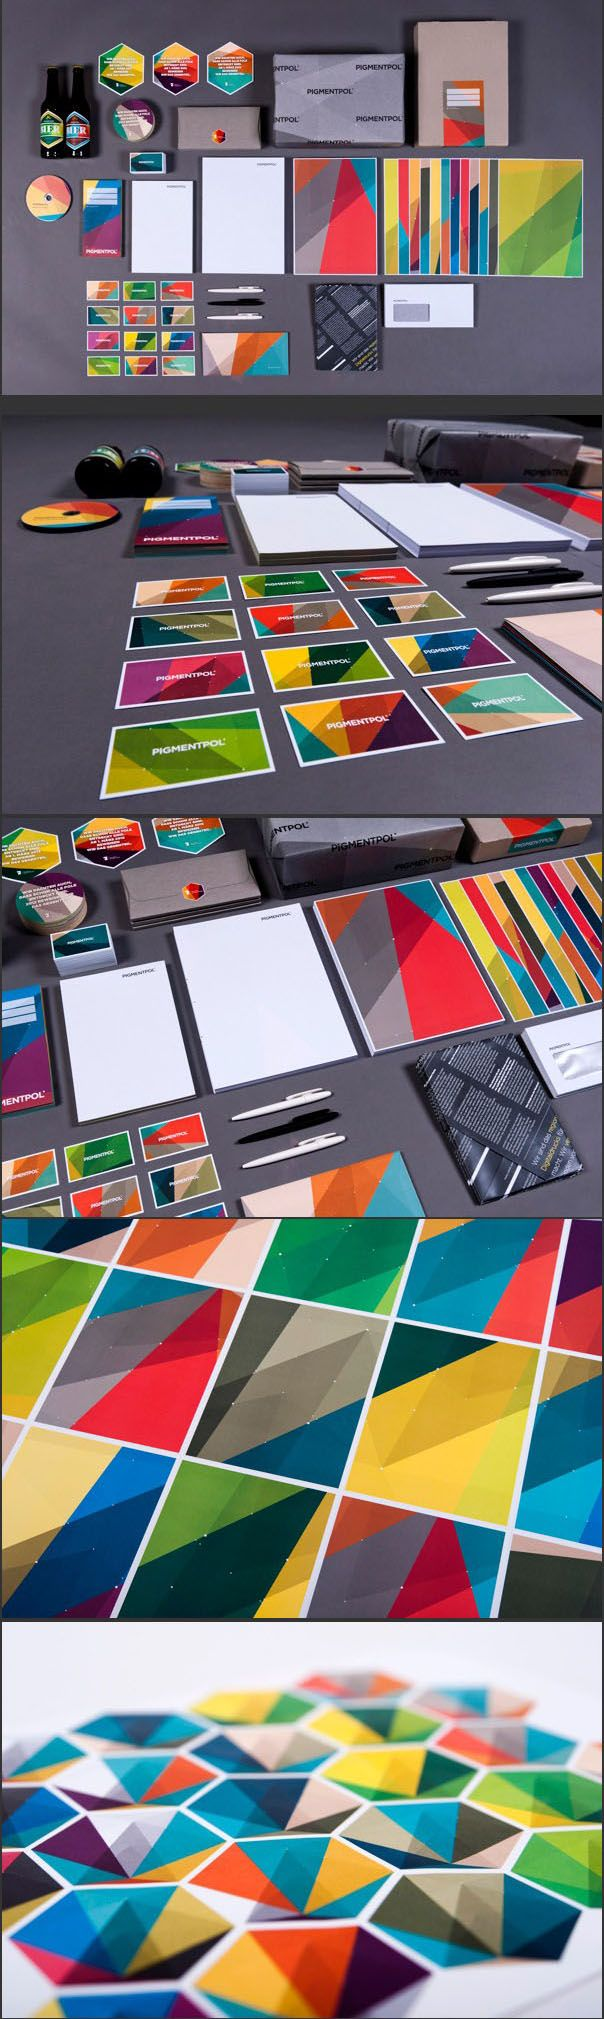 25 Creative Corporate Identity and Branding Design examples | Read full article: http://webneel.com/corporate-identity-branding | more http://webneel.com/branding | Follow us www.pinterest.com/webneel